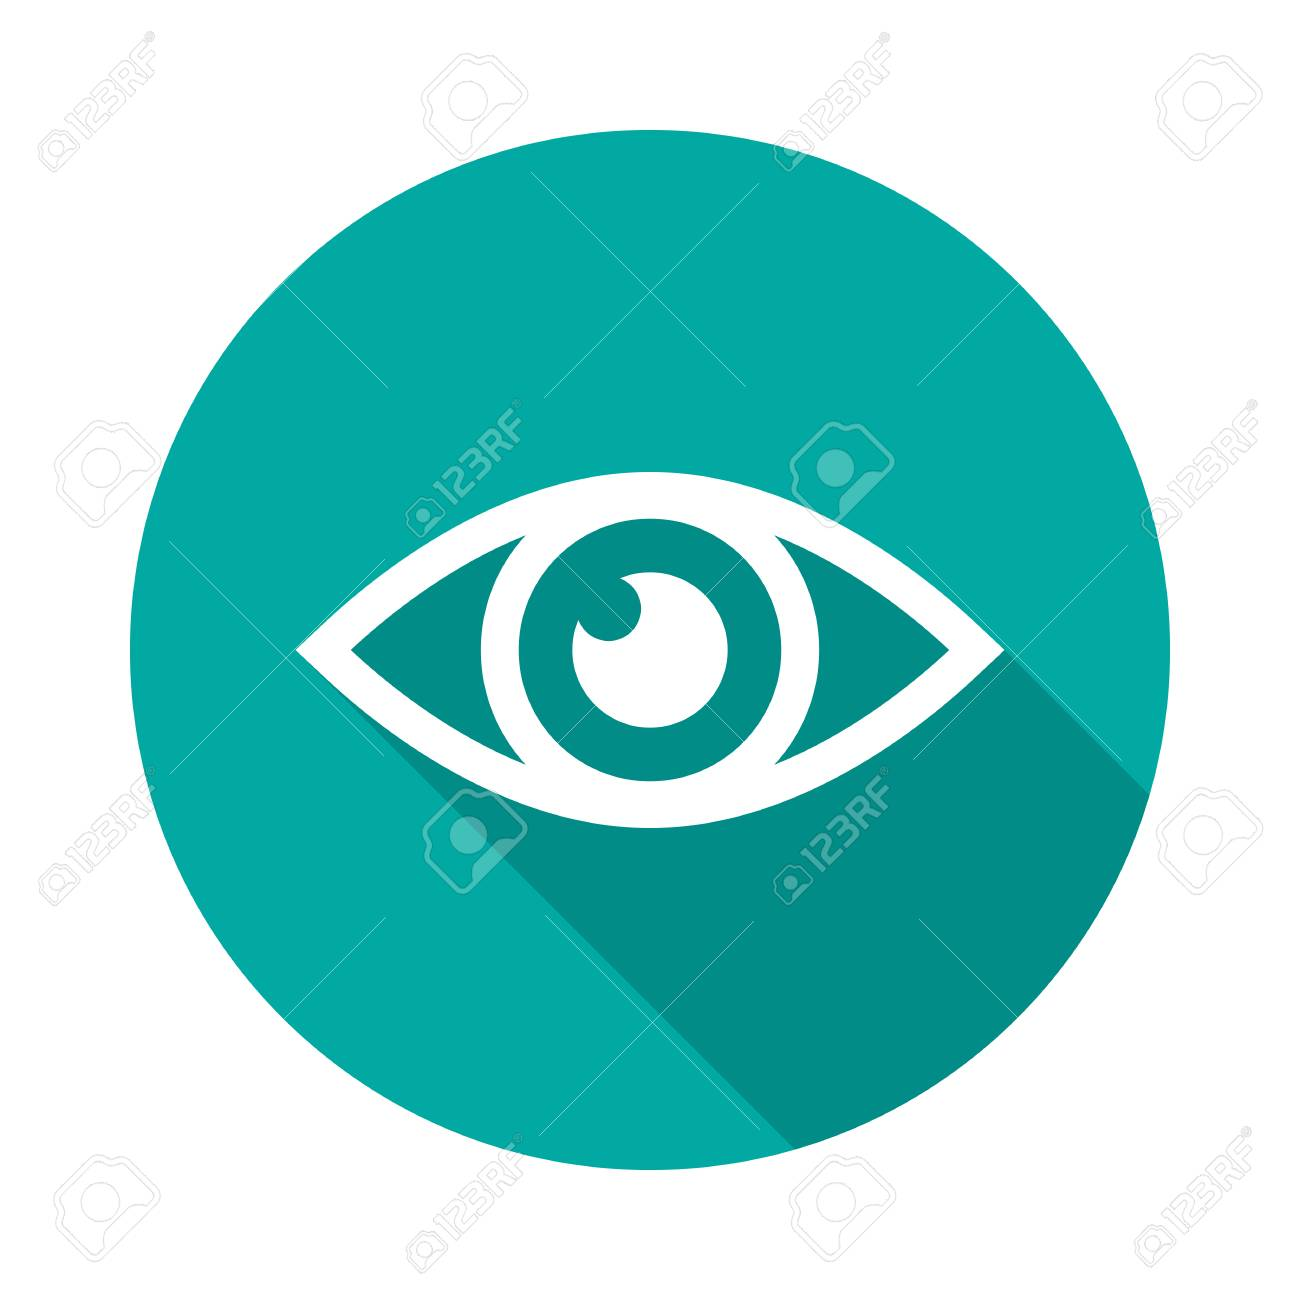 90388316-eye-circle-icon-with-long-shadow-flat-design-style-eye-simple-silhouette-modern-minimalist-round-ico.jpg